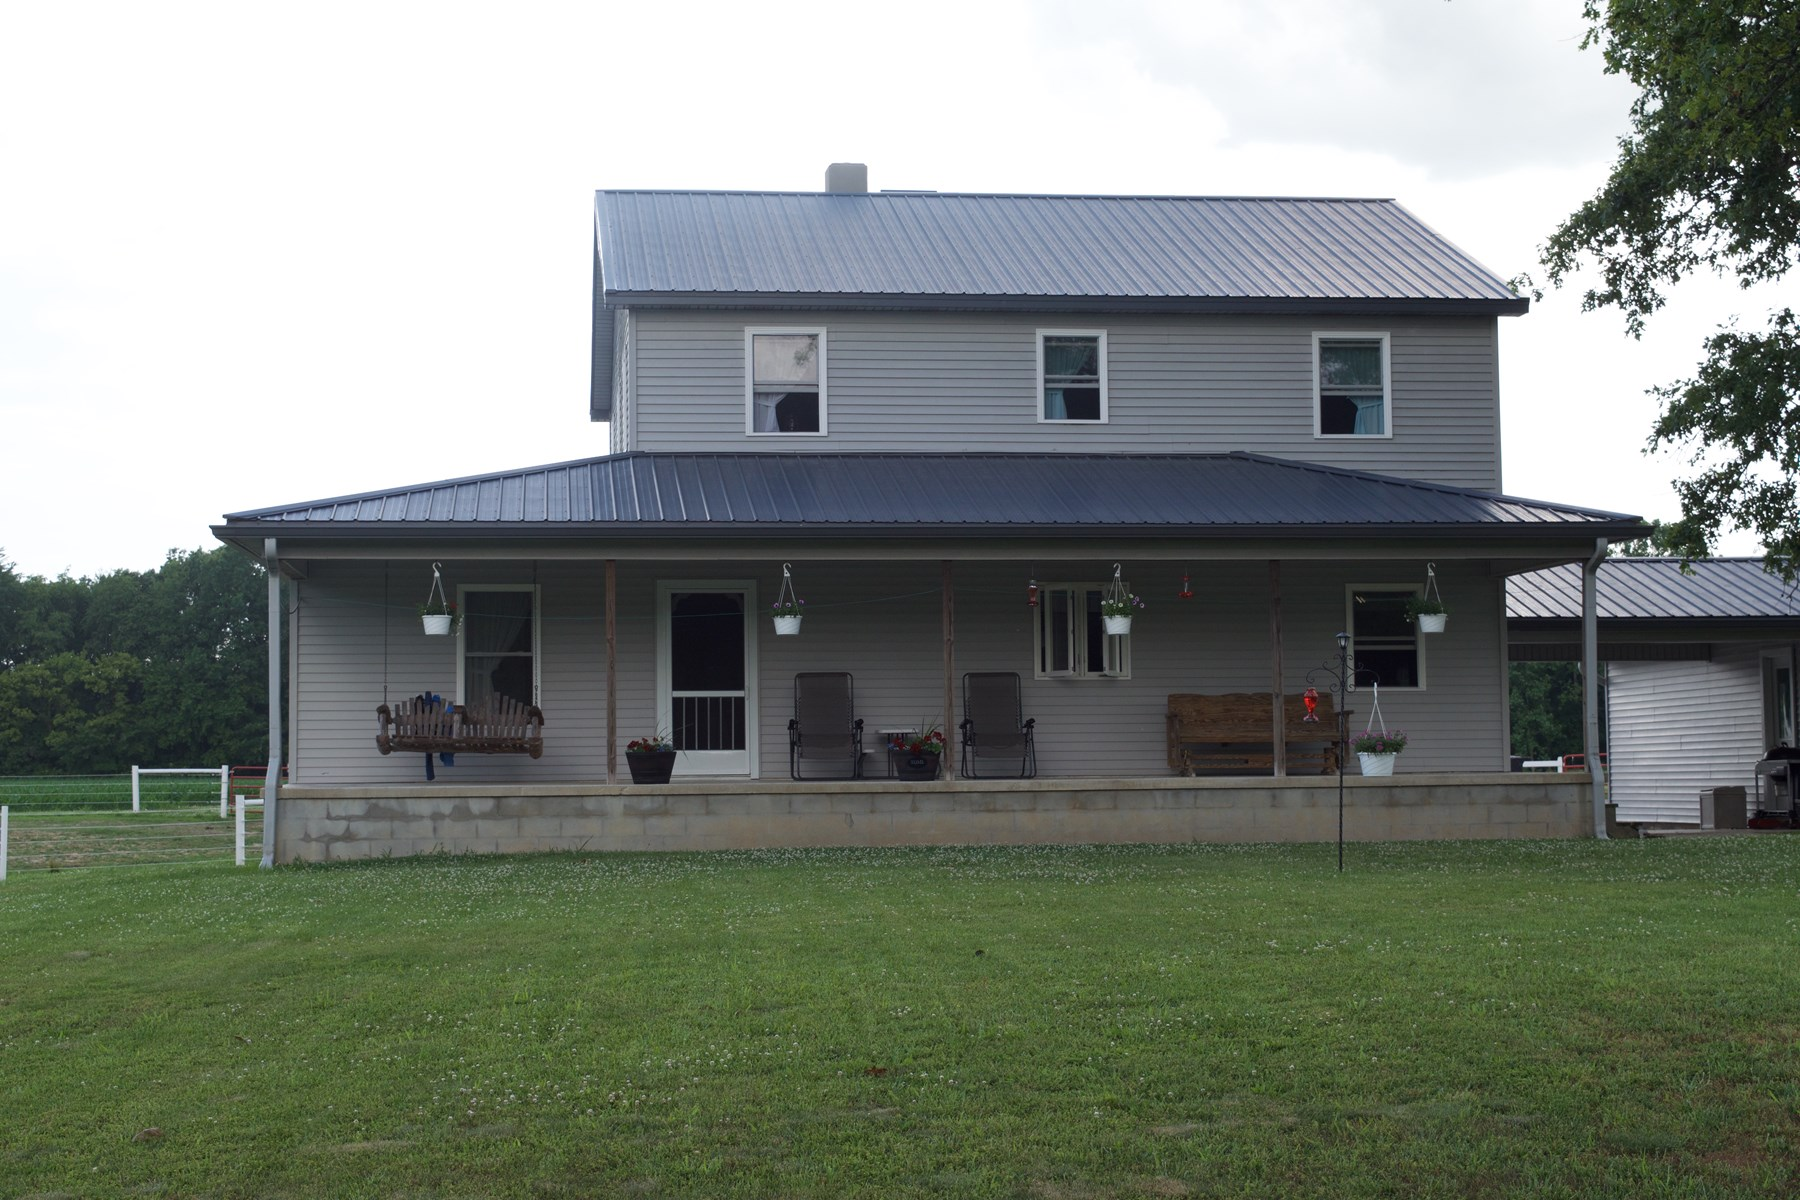 5 Bedroom, 3 Bath Country Home on 14 Acres, Oblong, IL